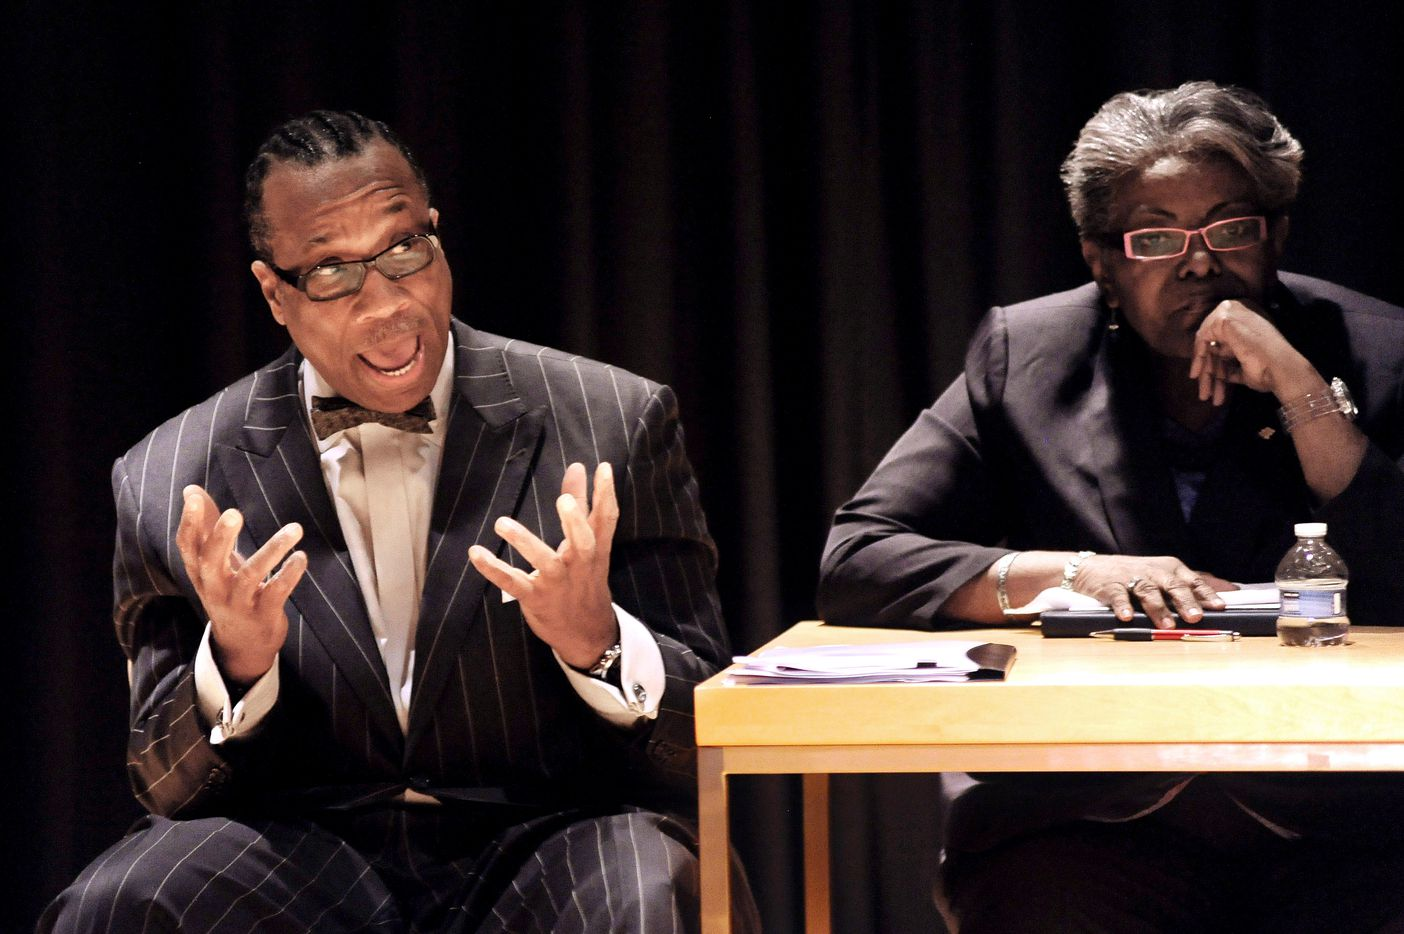 John Wiley Price, left, speaks during the debate at a forum for the District 3 commissioner's court seat, while Betty Culbreath awaits her turn to speak at the African American Museum in Dallas in March, 2012.